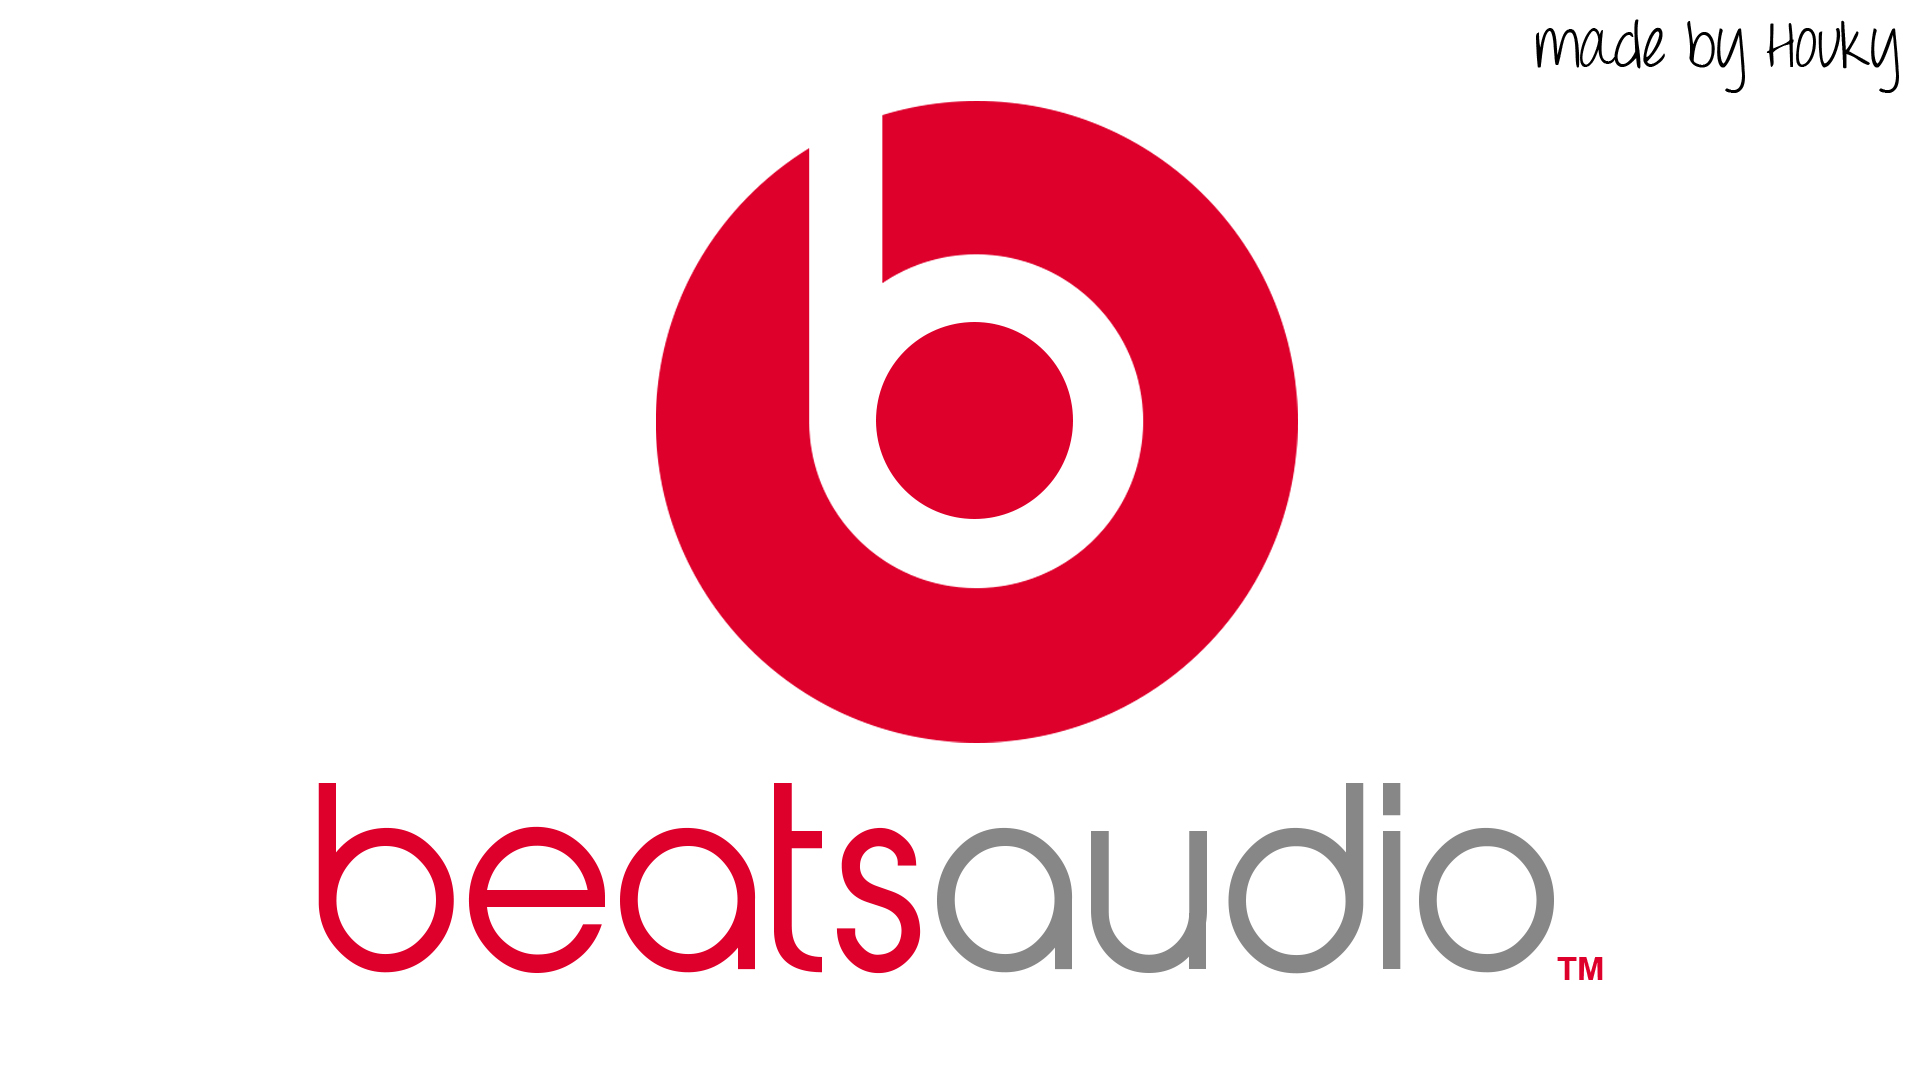 Filename: beats_audio__psd_file__by_houky12345-d55smif.jpg - Beats Audio PNG